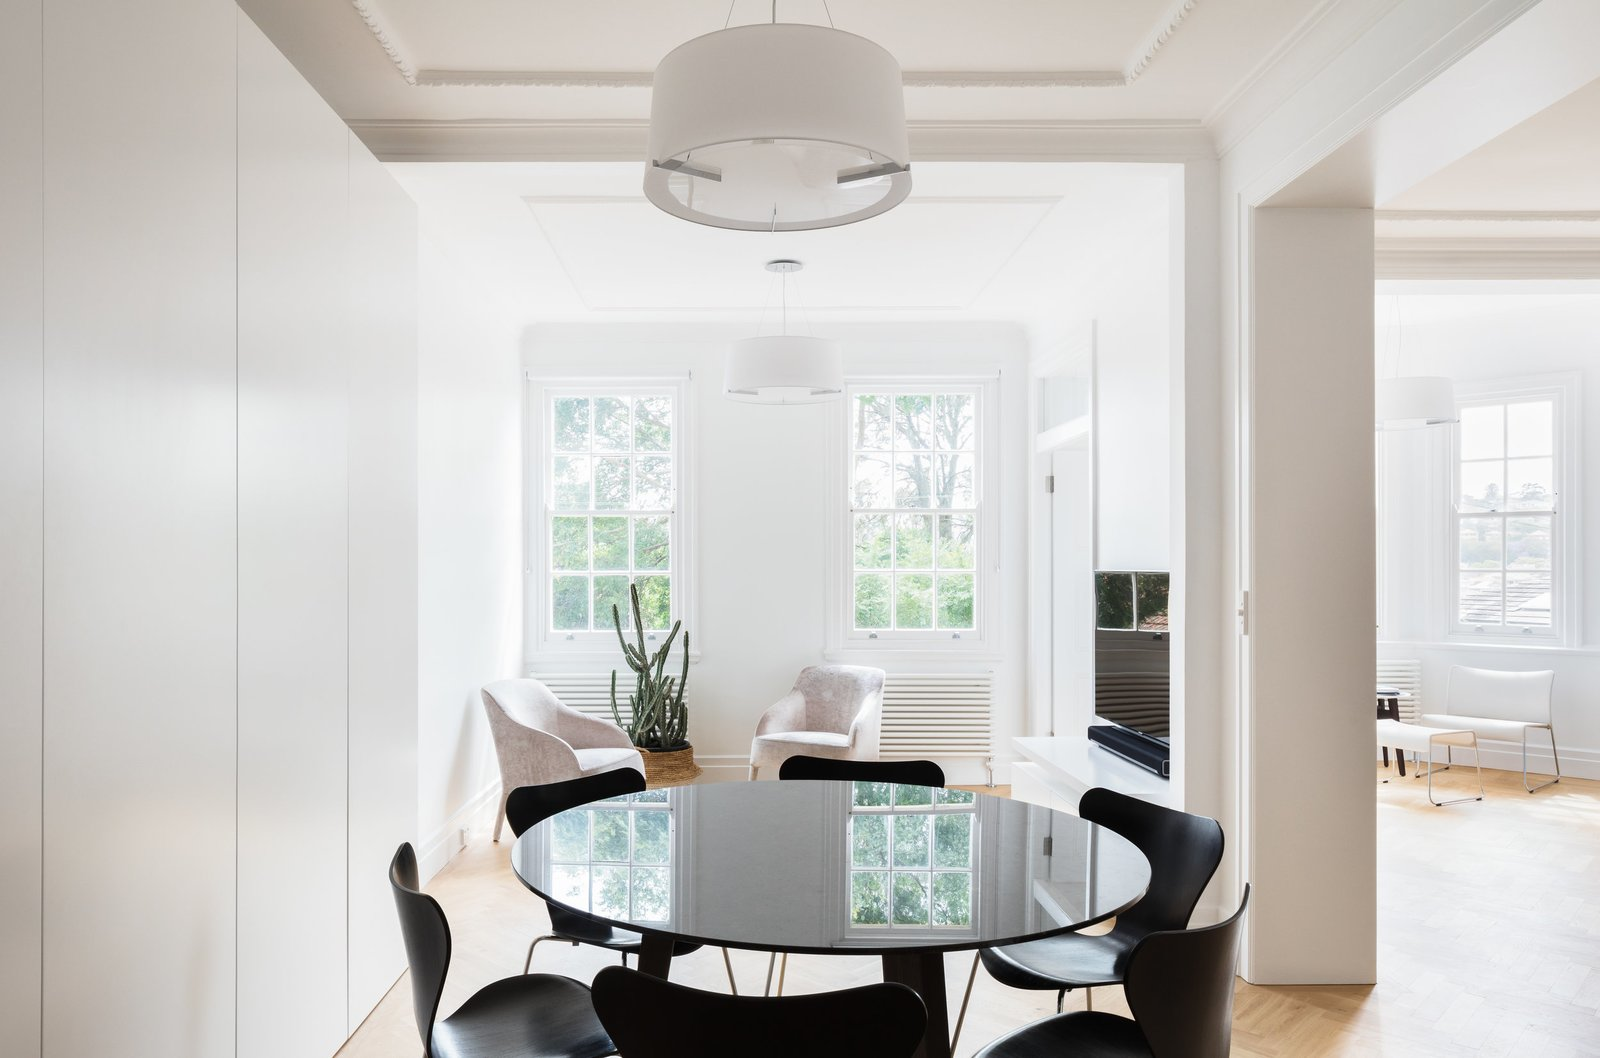 Tagged: Dining Room, Chair, Pendant Lighting, Table, and Light Hardwood Floor.  K Apartment by Leibal